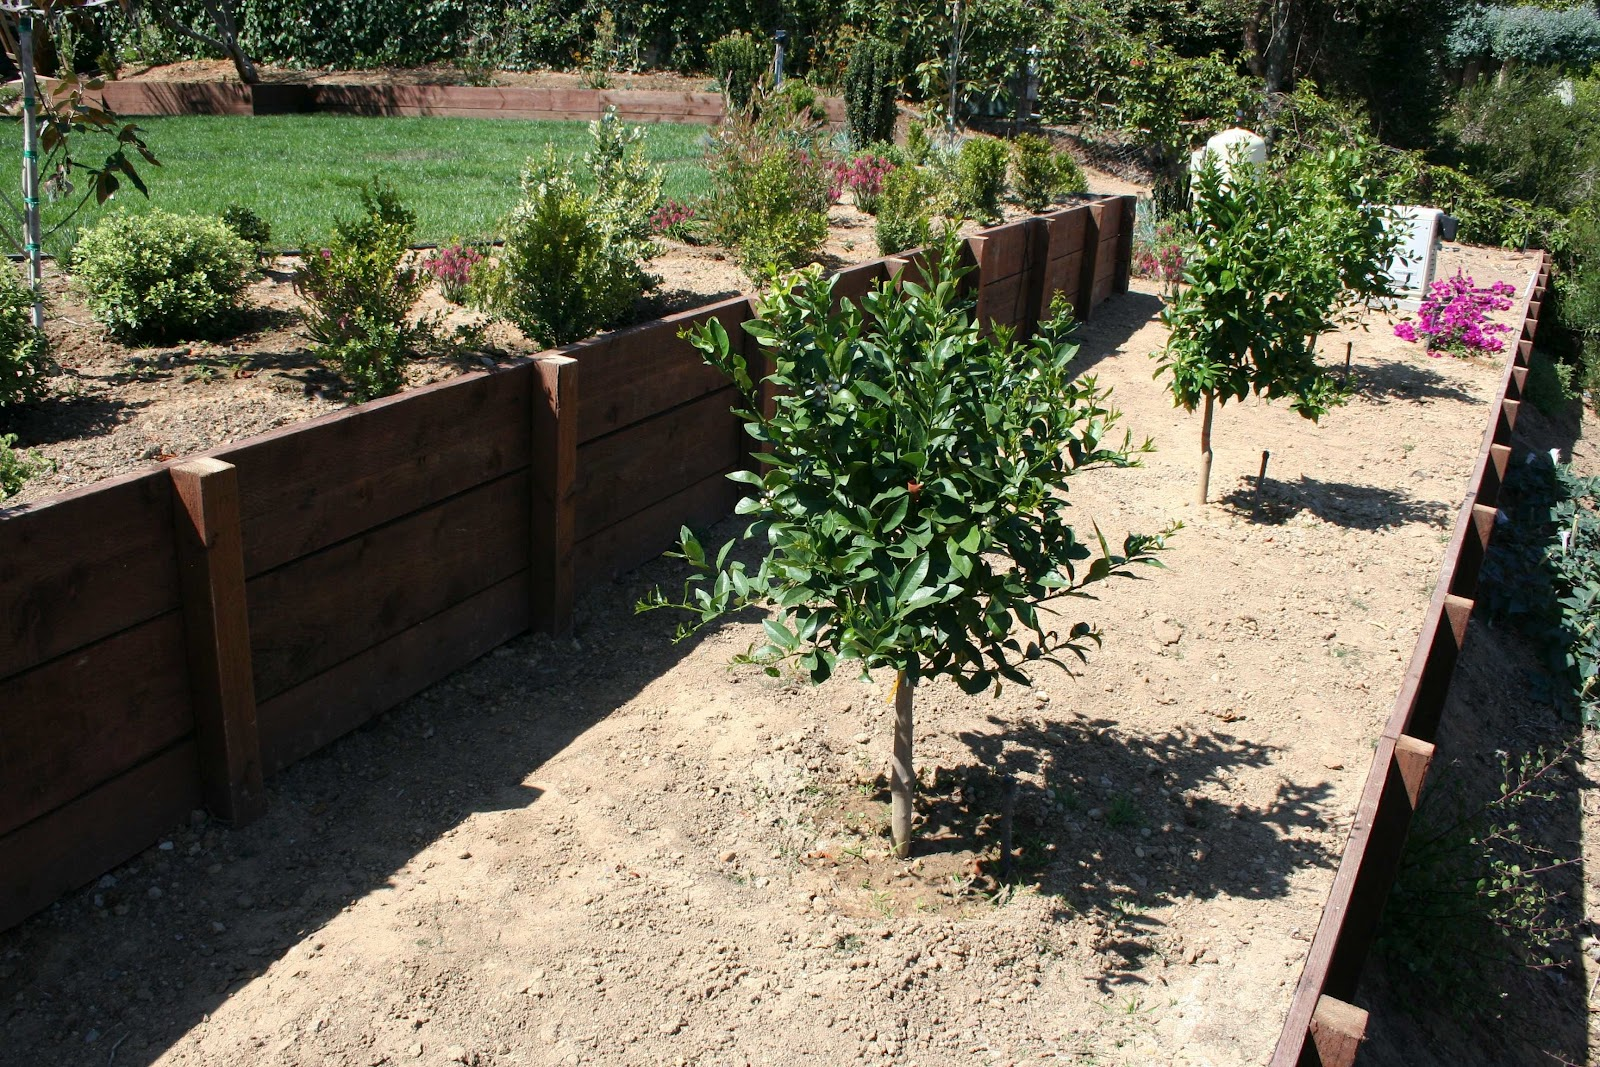 Good Fruit Trees For Backyard : Above Variety of fruit trees growing in backyard landscaping terrace